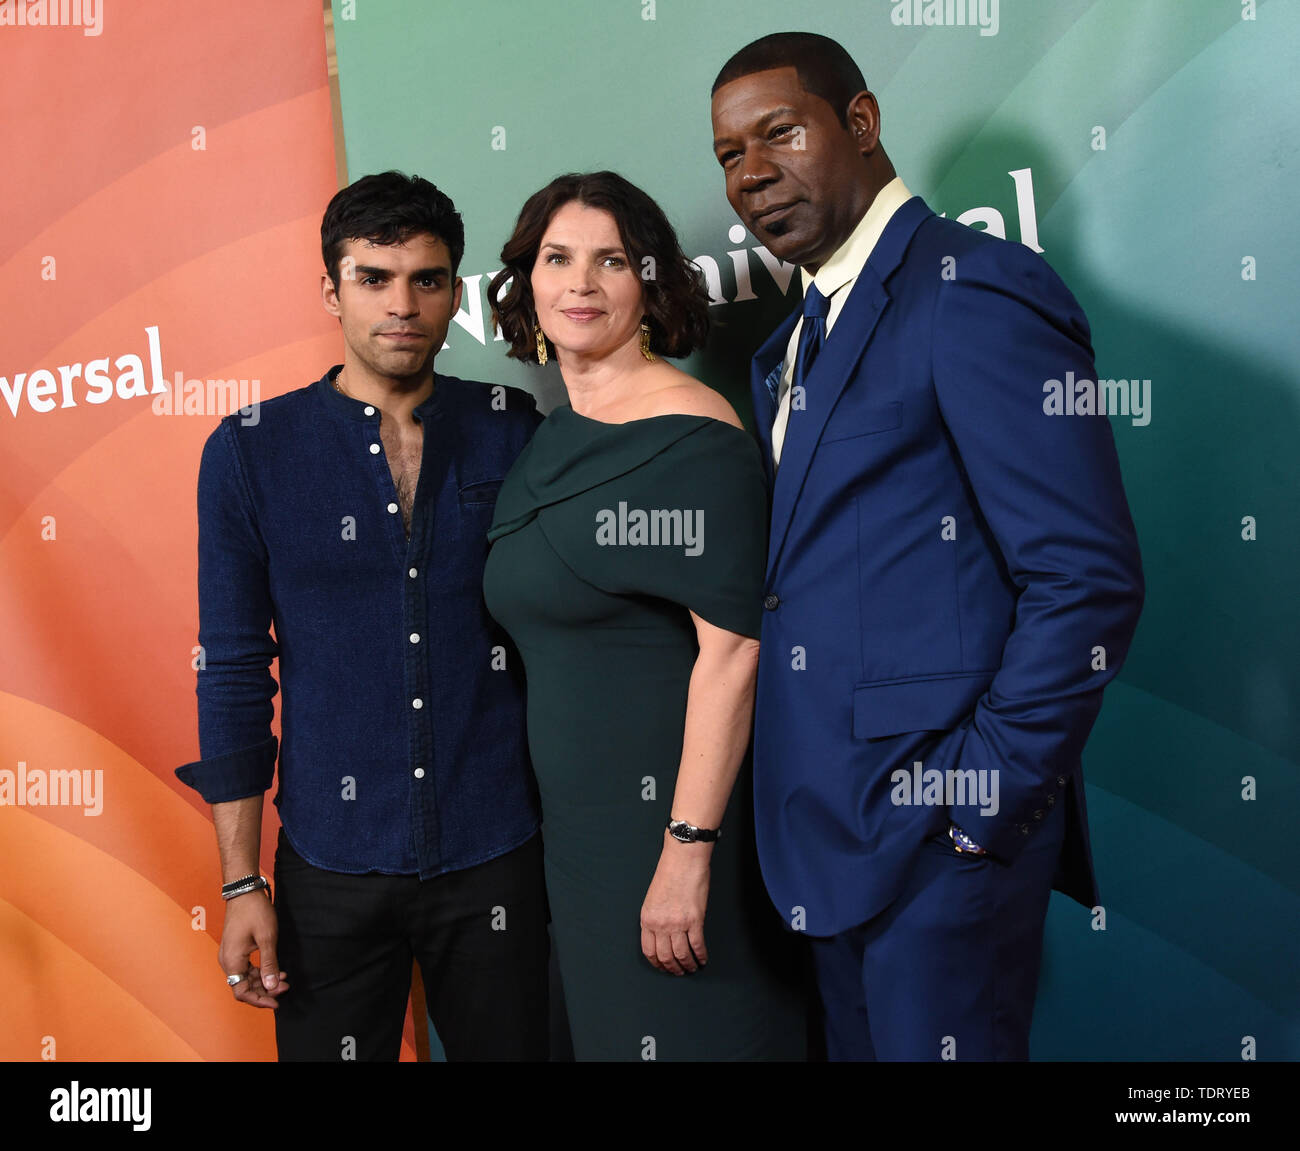 August 4, 2016 - Beverly Hills, California, Etats-Unis - Sean Teale + Julia Ormond + Dennis Haysbert @ the 2016 NBC Universal summer press tour held @ the Beverly Hilton hotel..August 3, 2016 (Credit Image: © Chris Delmas/ZUMA Wire) - Stock Image